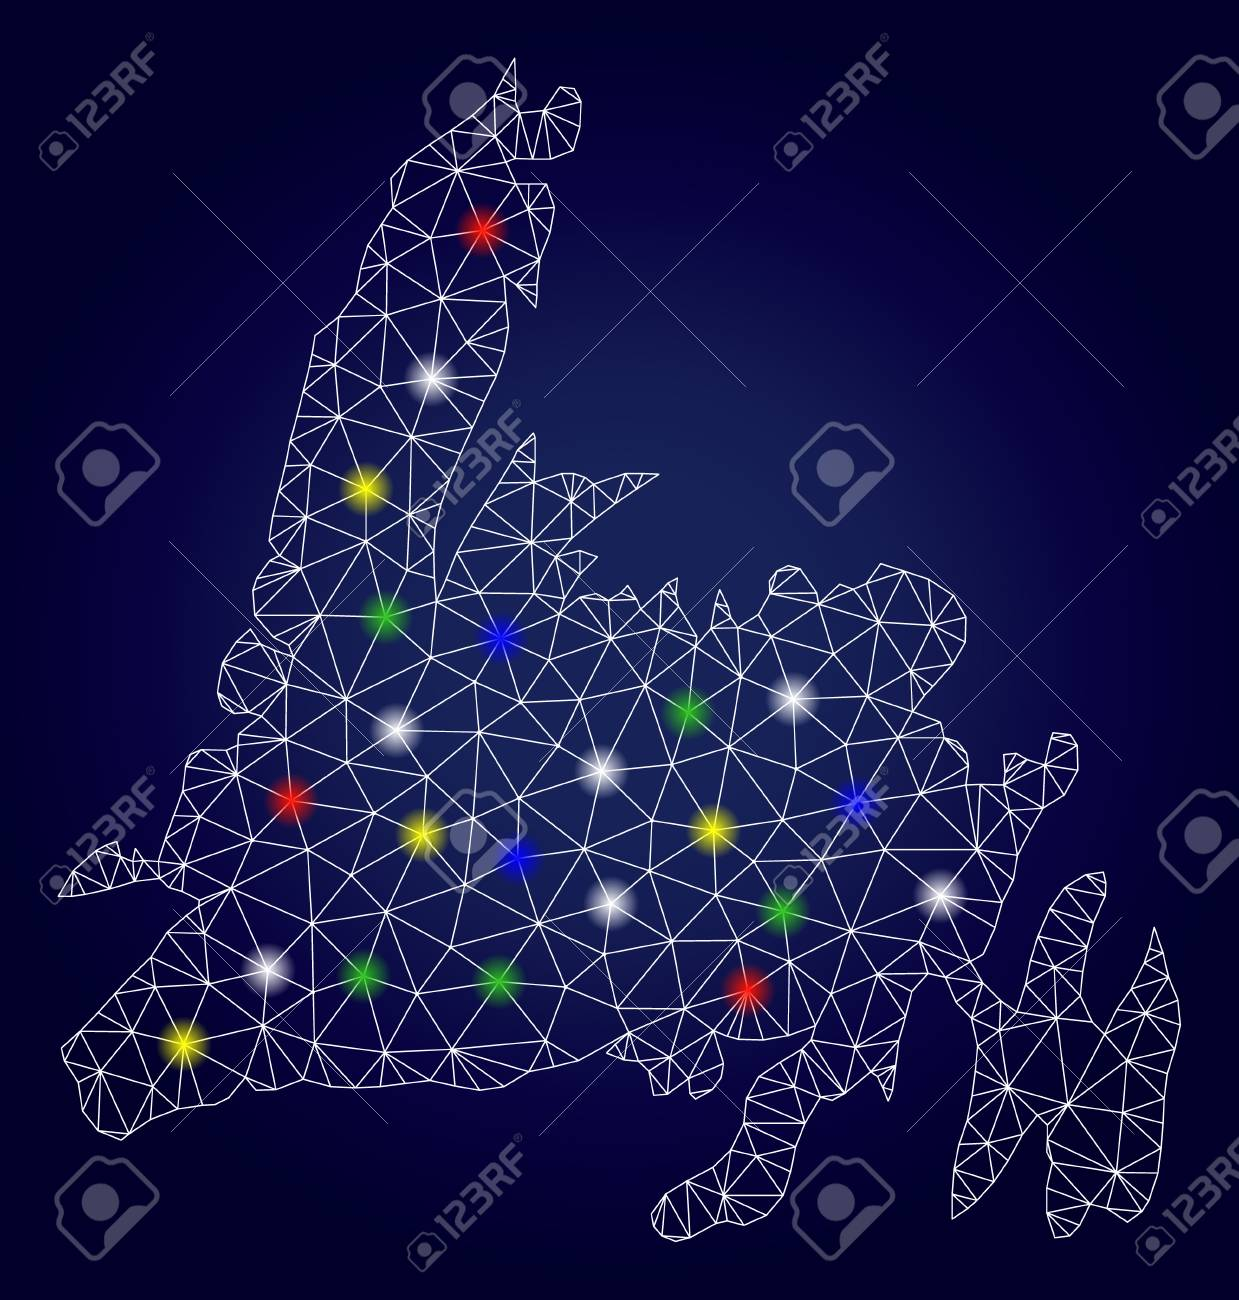 Patriotic Christmas Lights.Bright Mesh Vector Newfoundland Island Map With Glowing Light